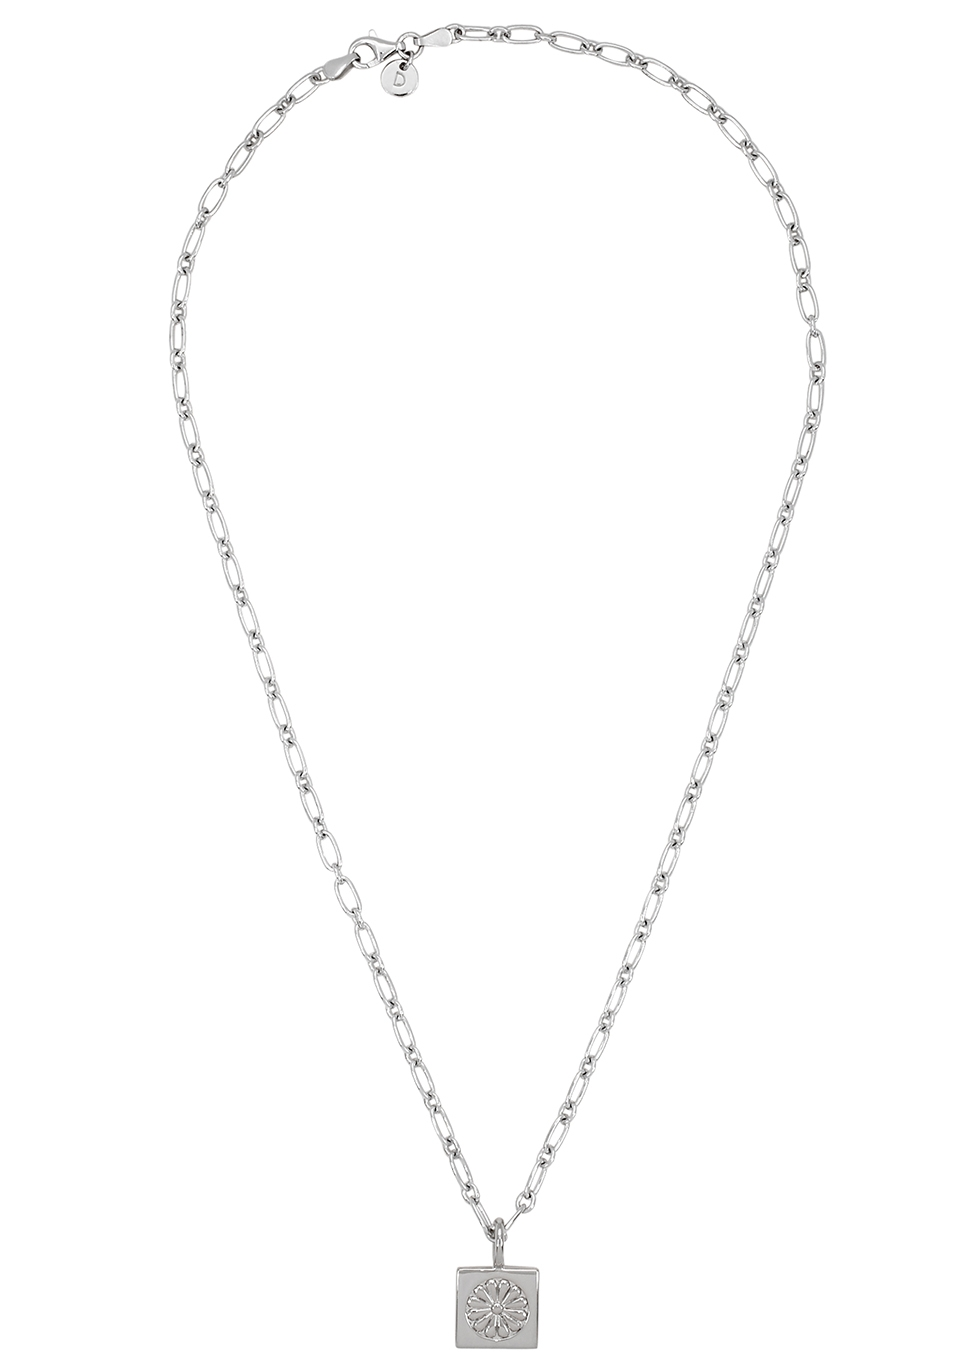 Daisy Square sterling silver chain necklace